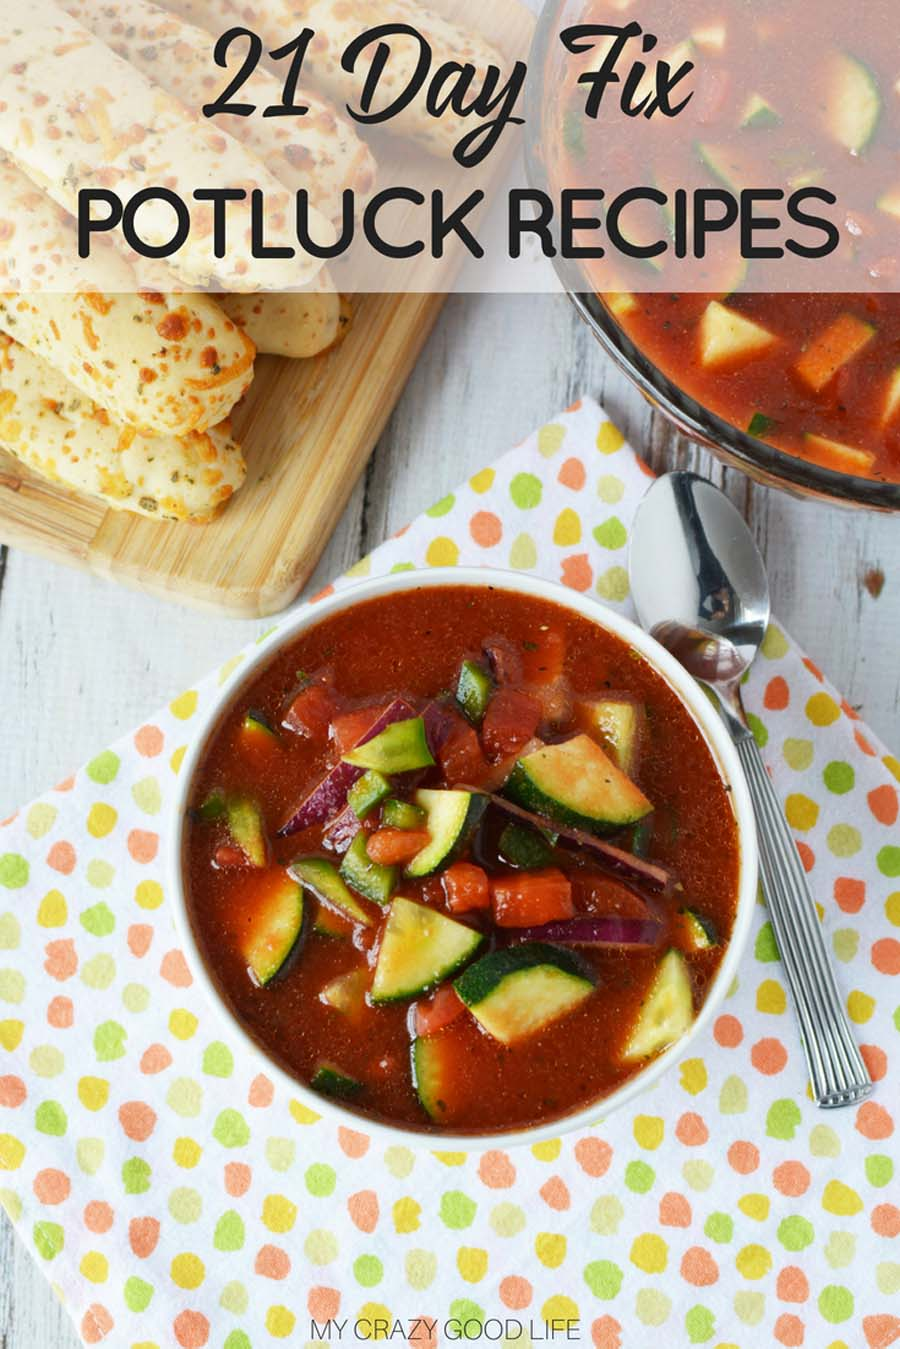 No one likes to go to a party empty handed. For your next event, BBQ, or gathering, try some of these 21 Day Fix potluck recipes. They're easy to transport and perfect for sharing! #21DayFix #beachbodyrecipes #beachbody #21dfx #eathealthy #healthyrecipes #recipes #potluckrecipes